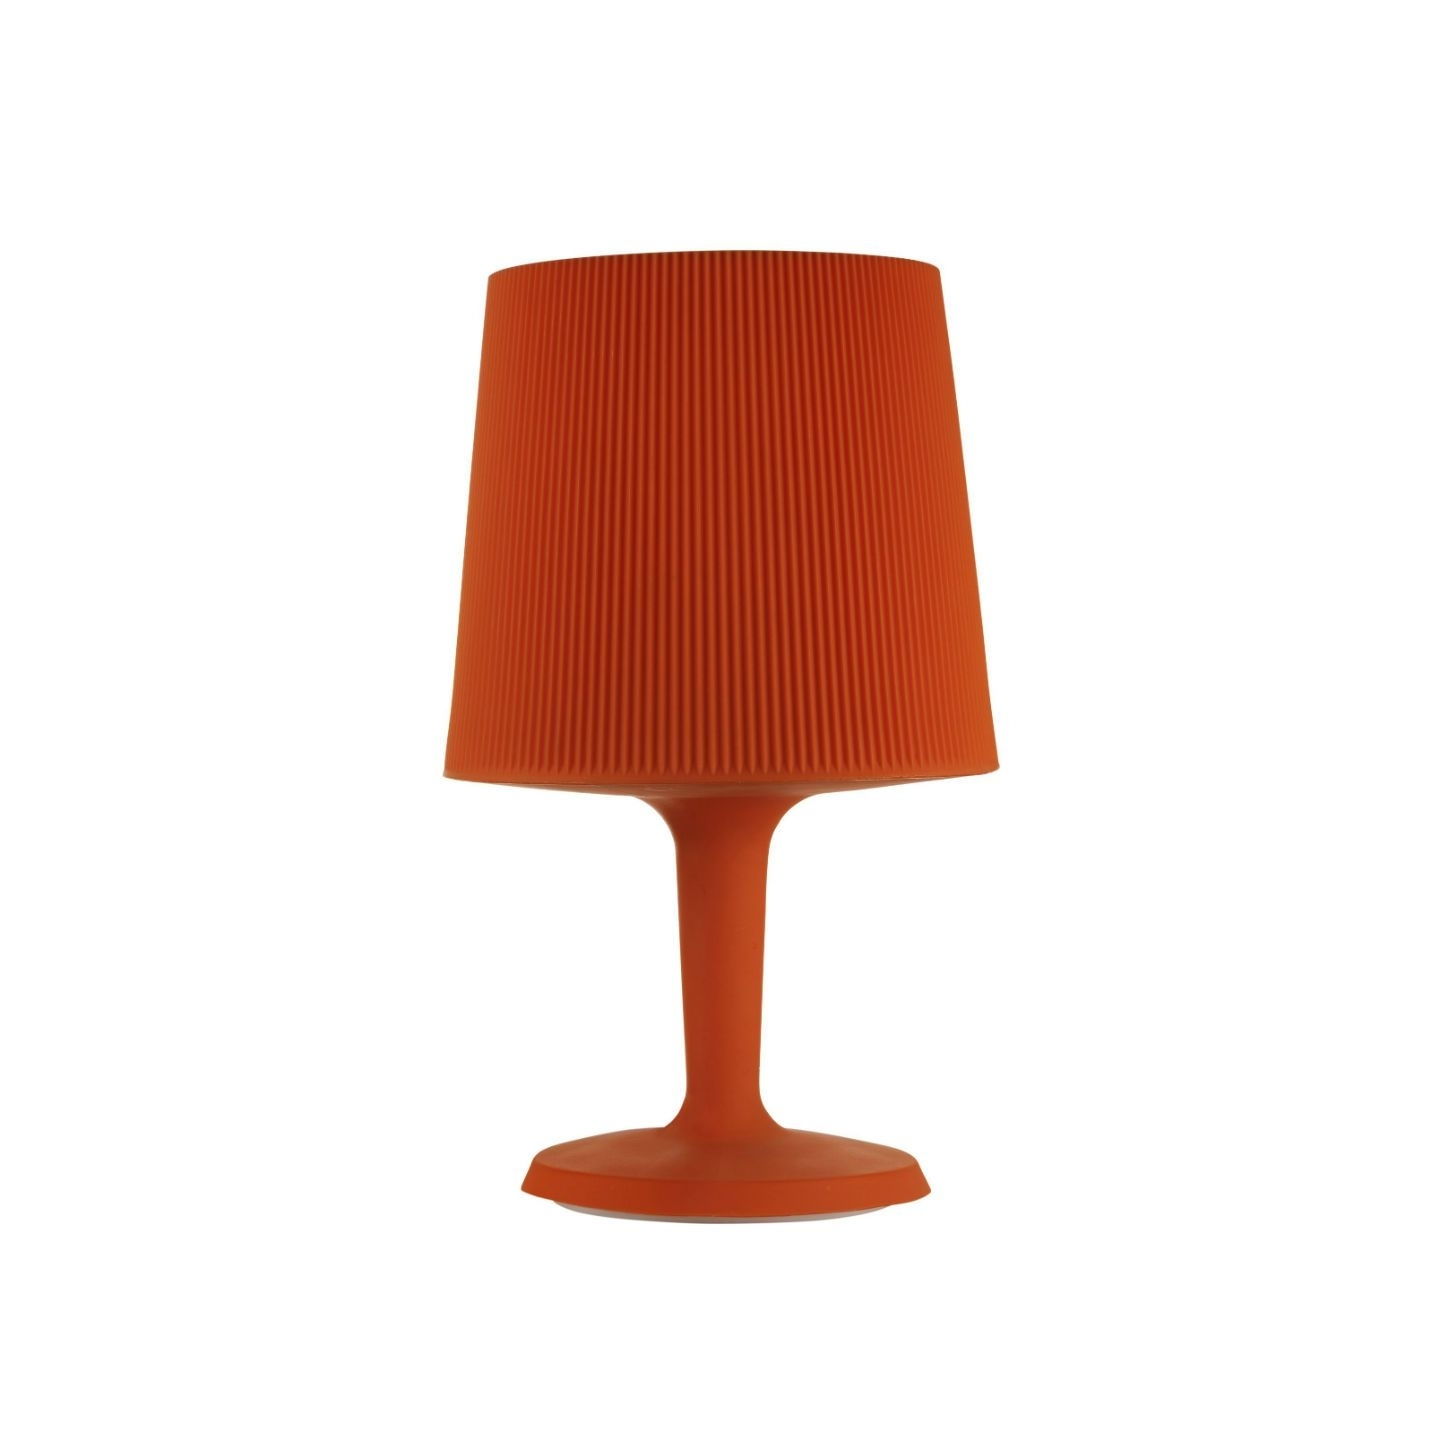 Metalarte Inout Table Lamp Small Of Outdoor Red 747800031, Small Within Latest Red Outdoor Table Lanterns (View 13 of 20)